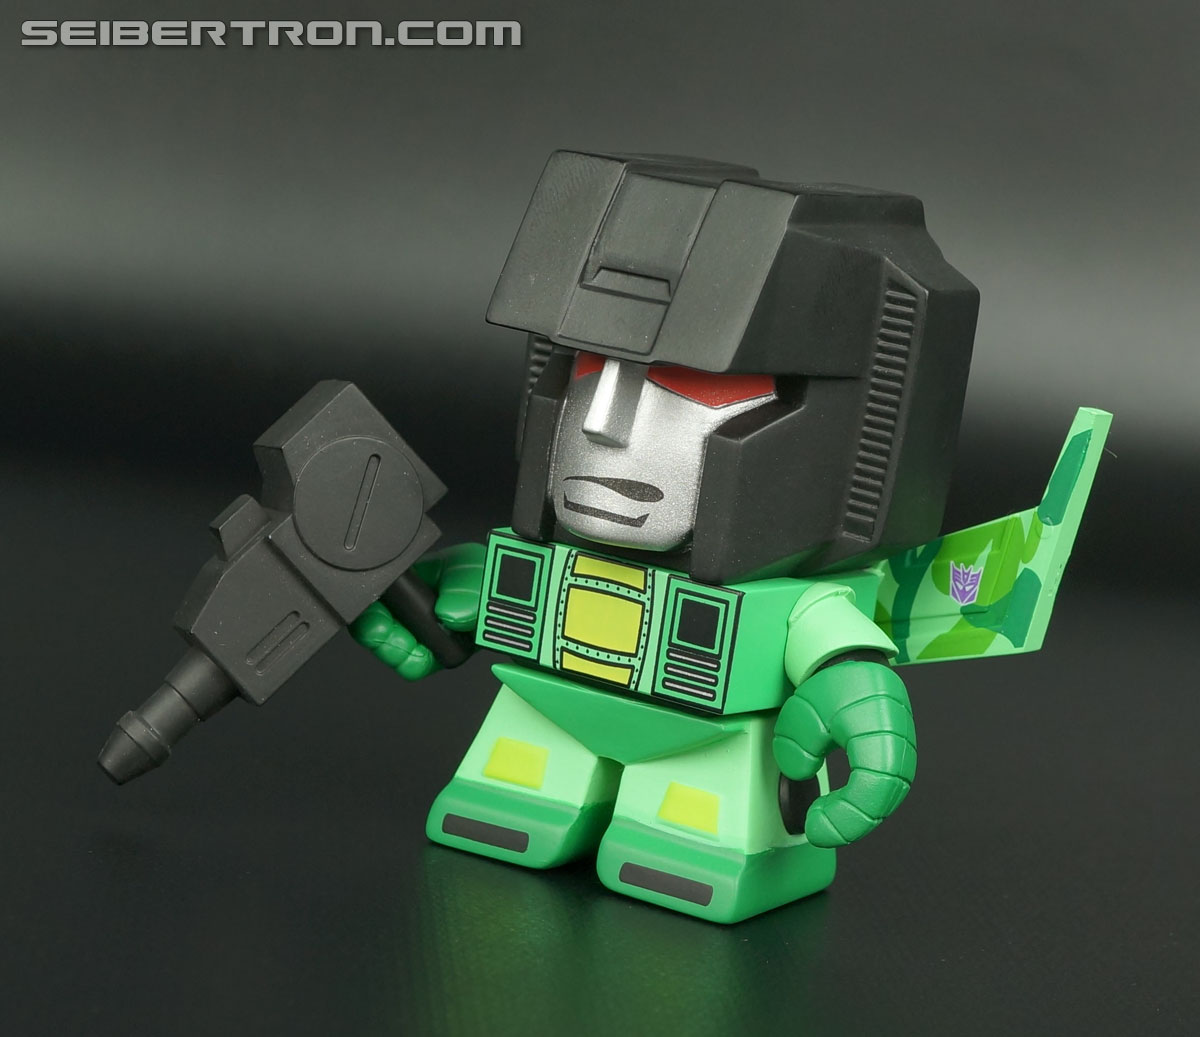 Transformers Loyal Subjects Rainmaker (Green) (Acid Storm) (Image #24 of 40)